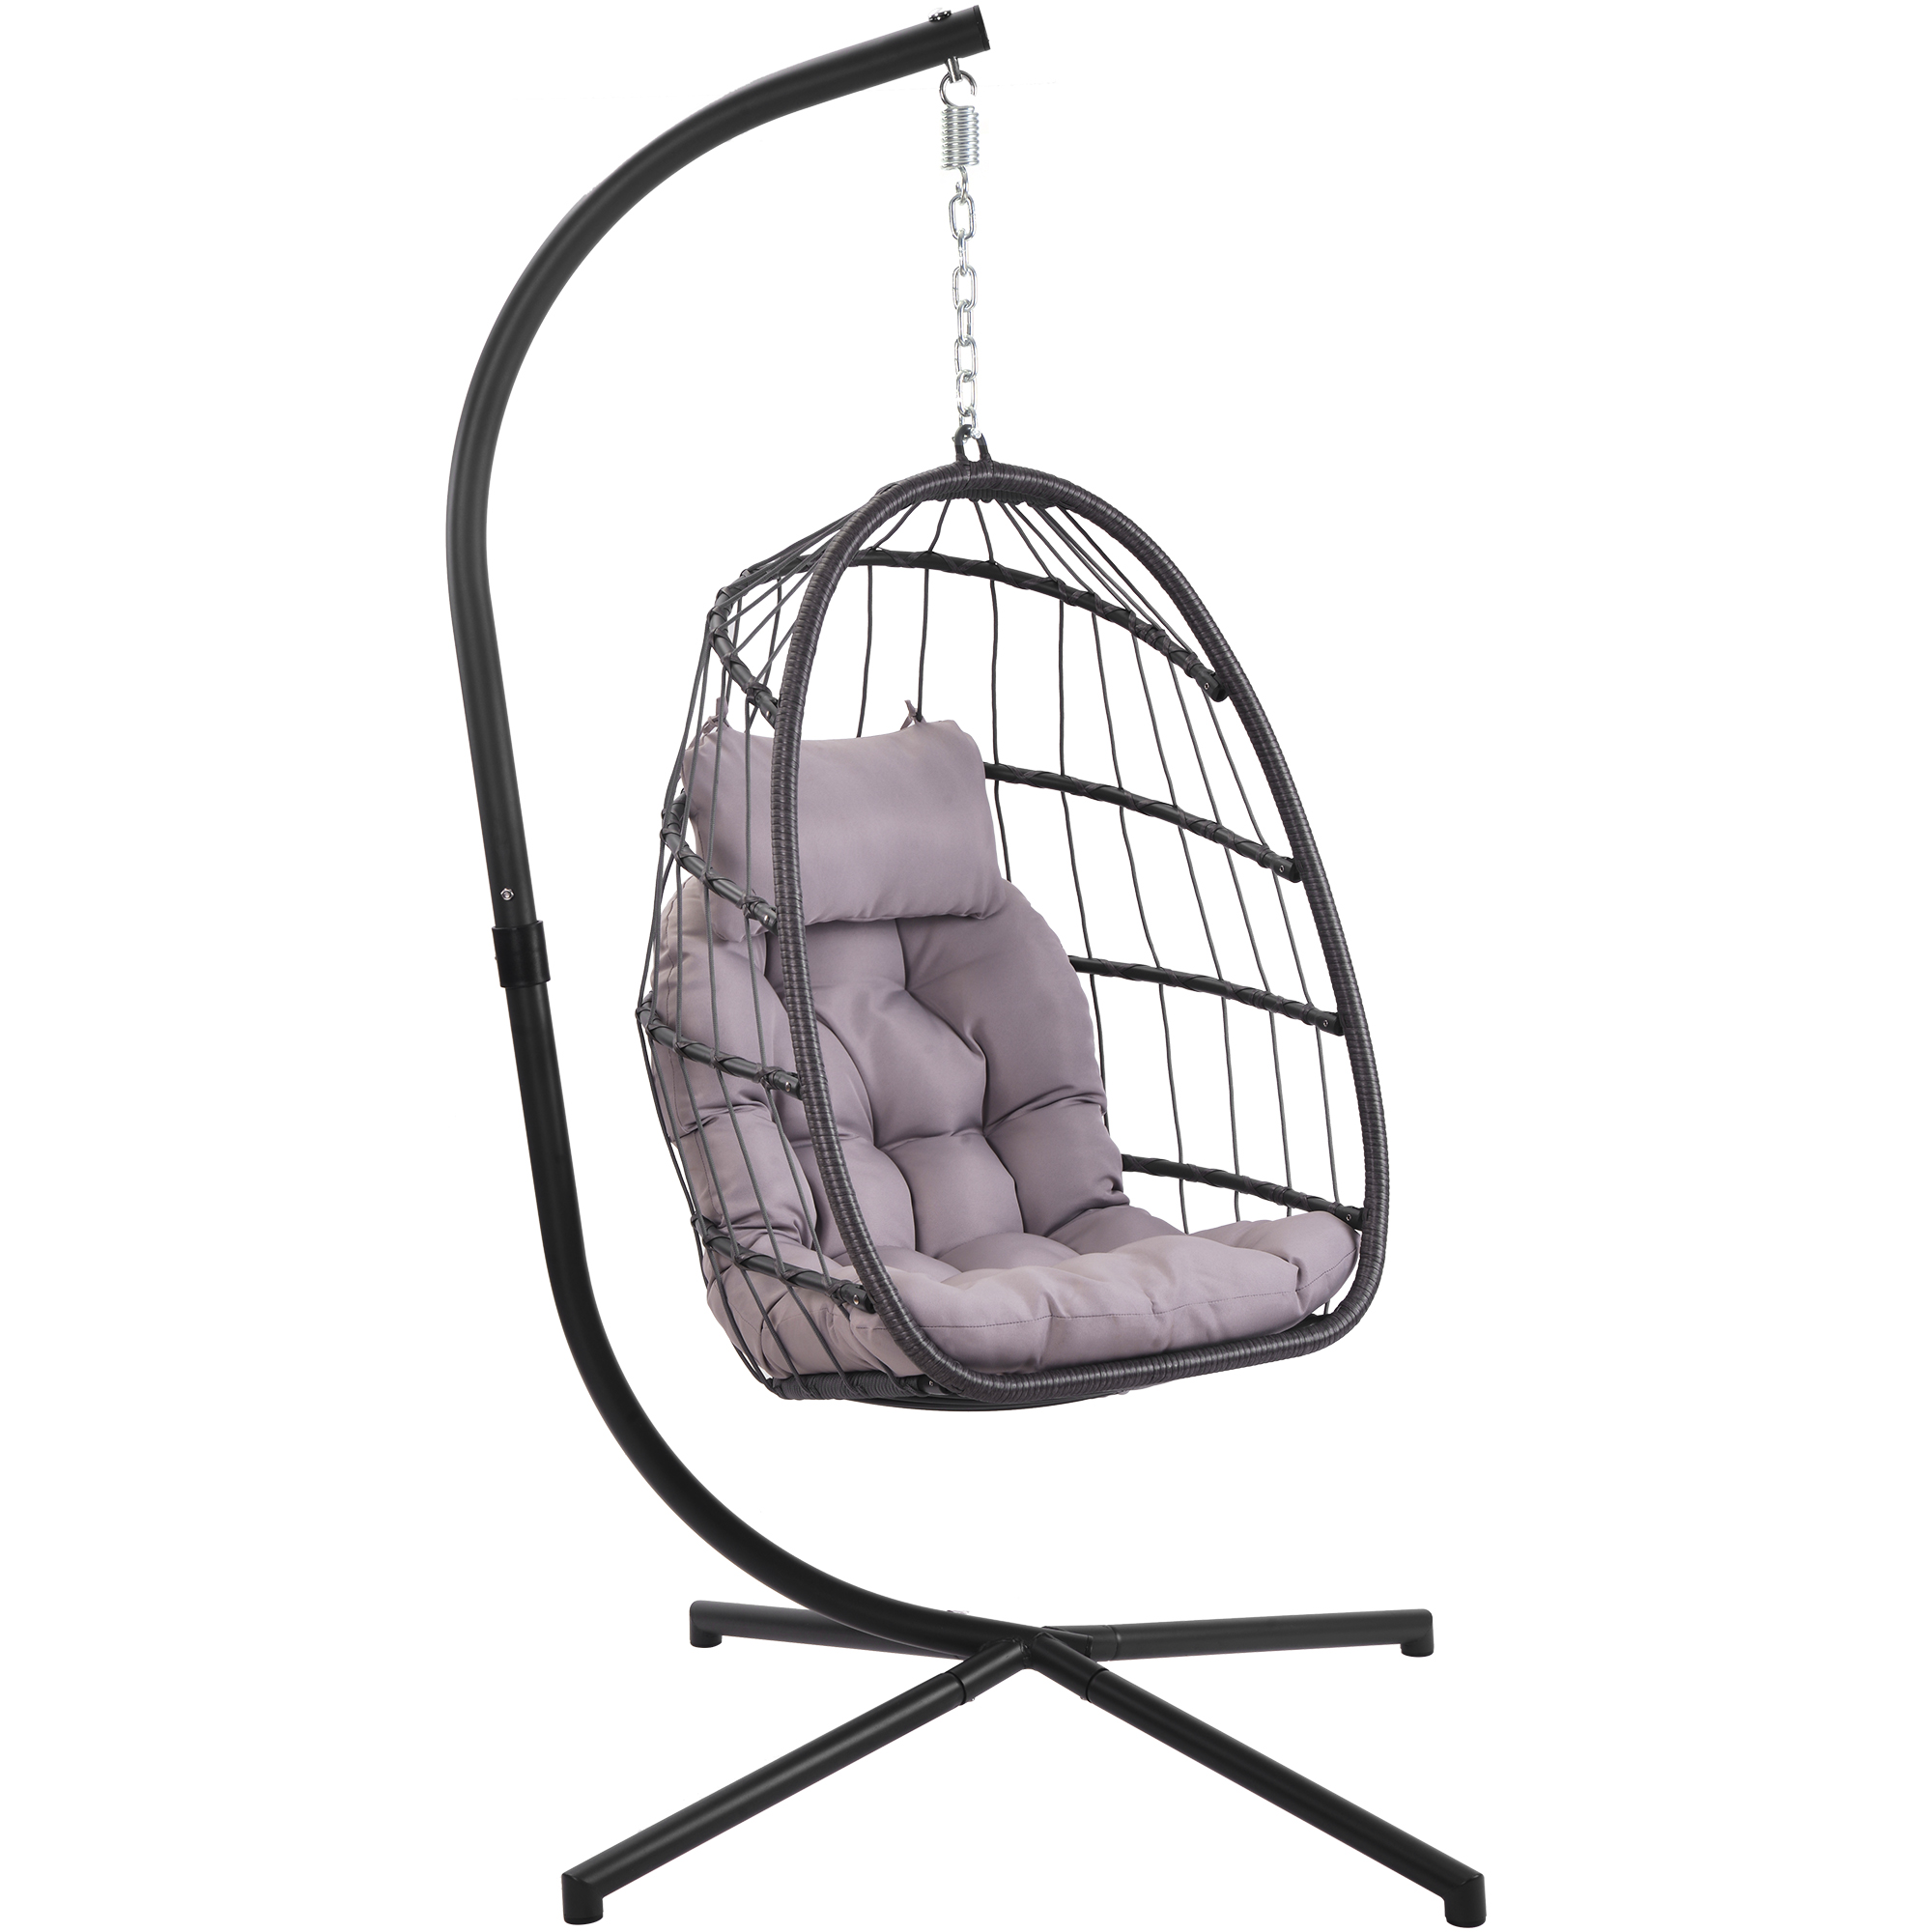 clearance hanging wicker egg chair outdoor patio hanging chairs with stand uv resistant hammock chair with comfortable gray cushion durable indoor